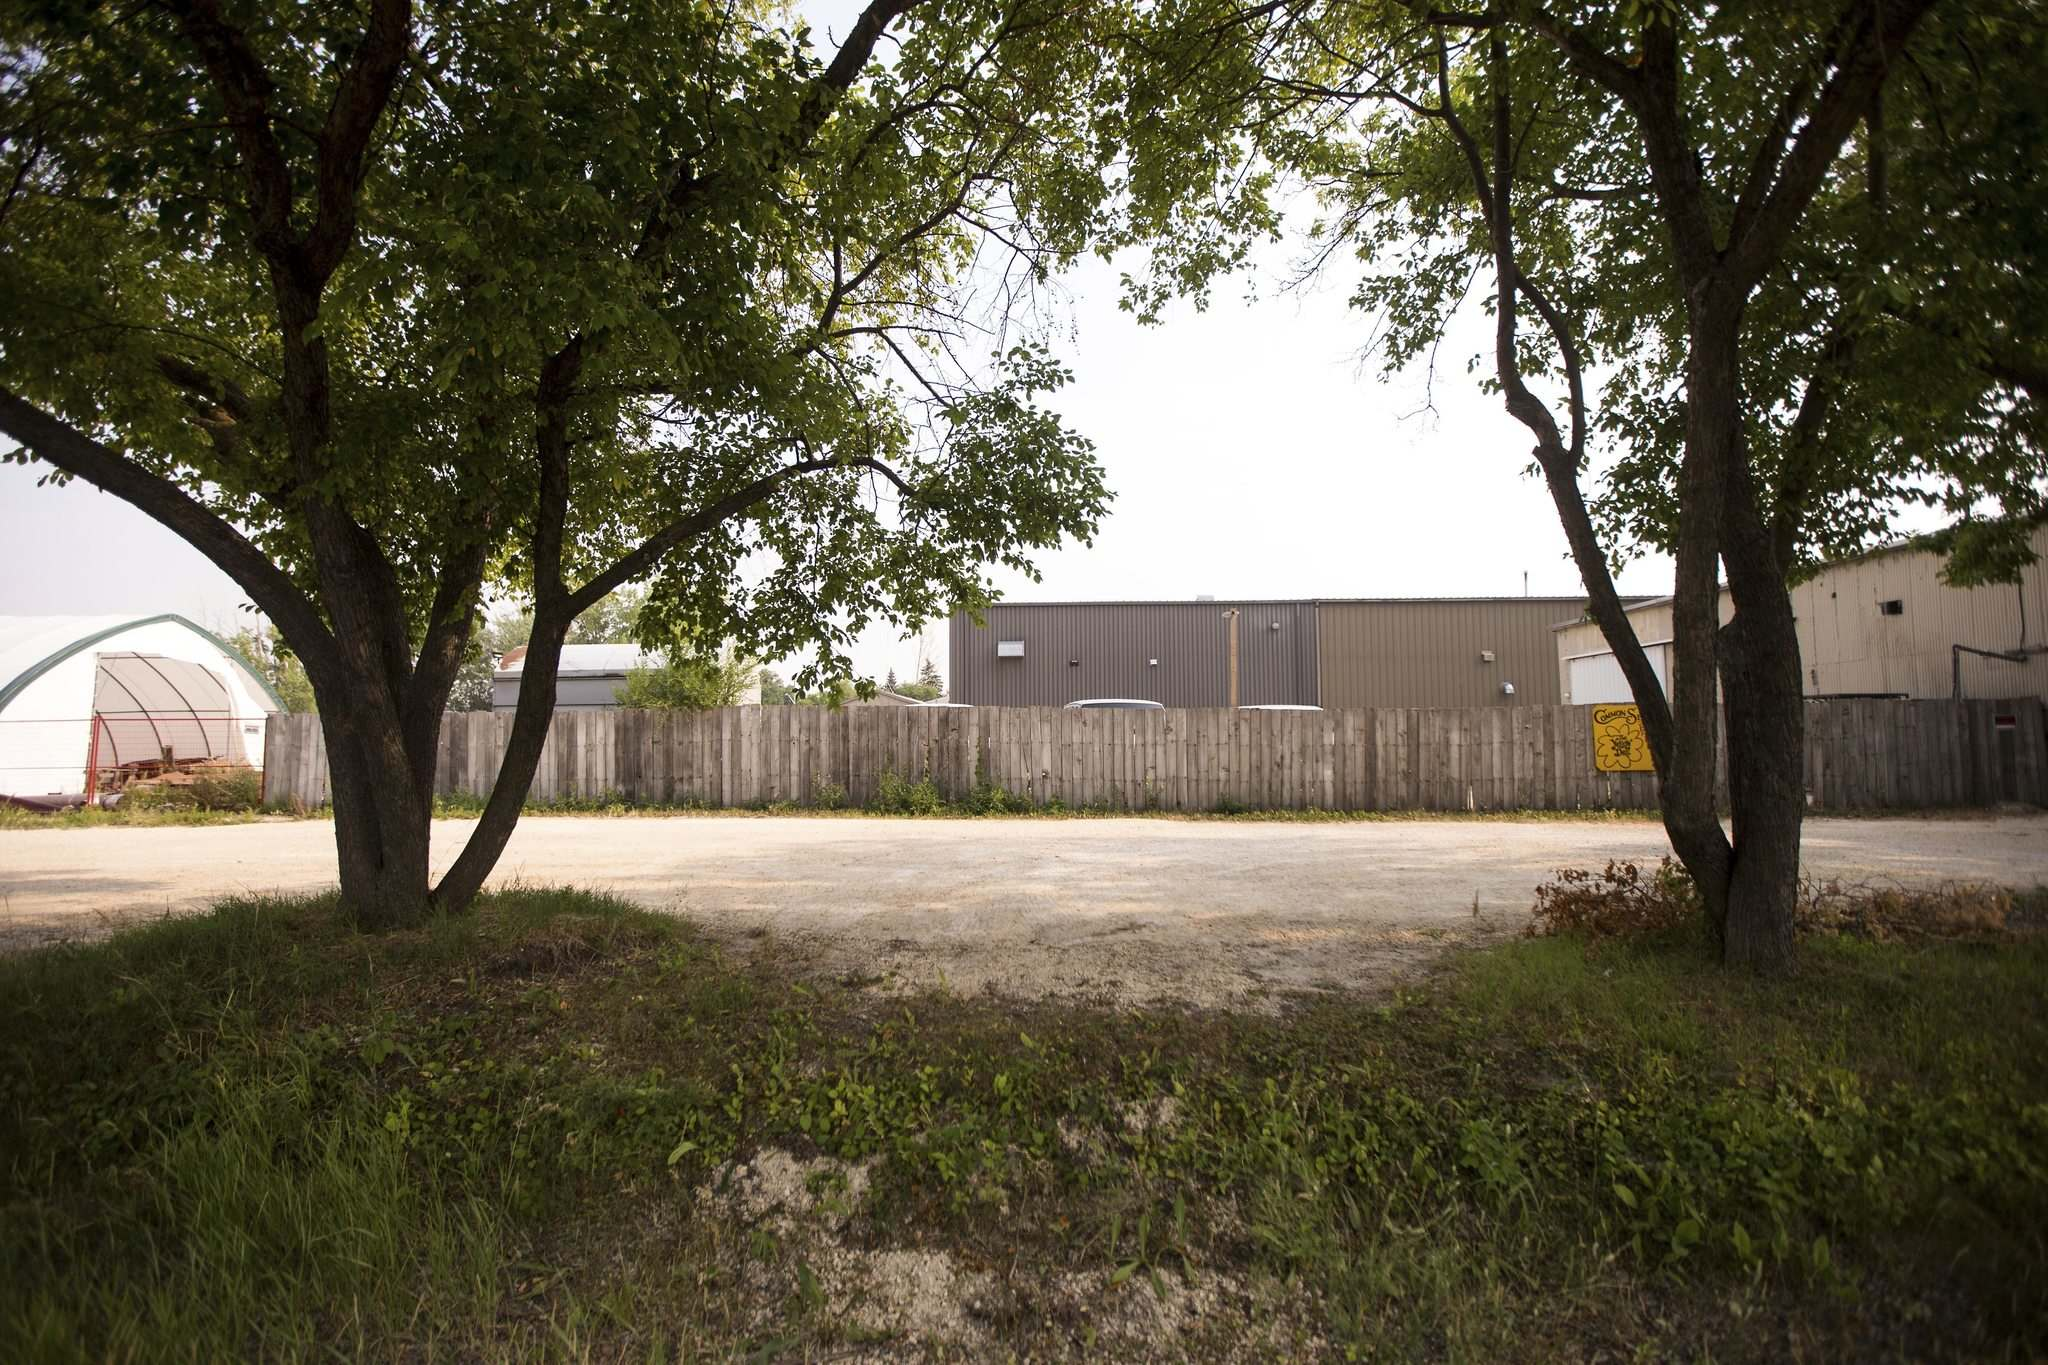 MIKAELA MACKENZIE / WINNIPEG FREE PRESS</p><p>The site of the St. Boniface Industrial School. The front of the building was likely between the two trees.</p>